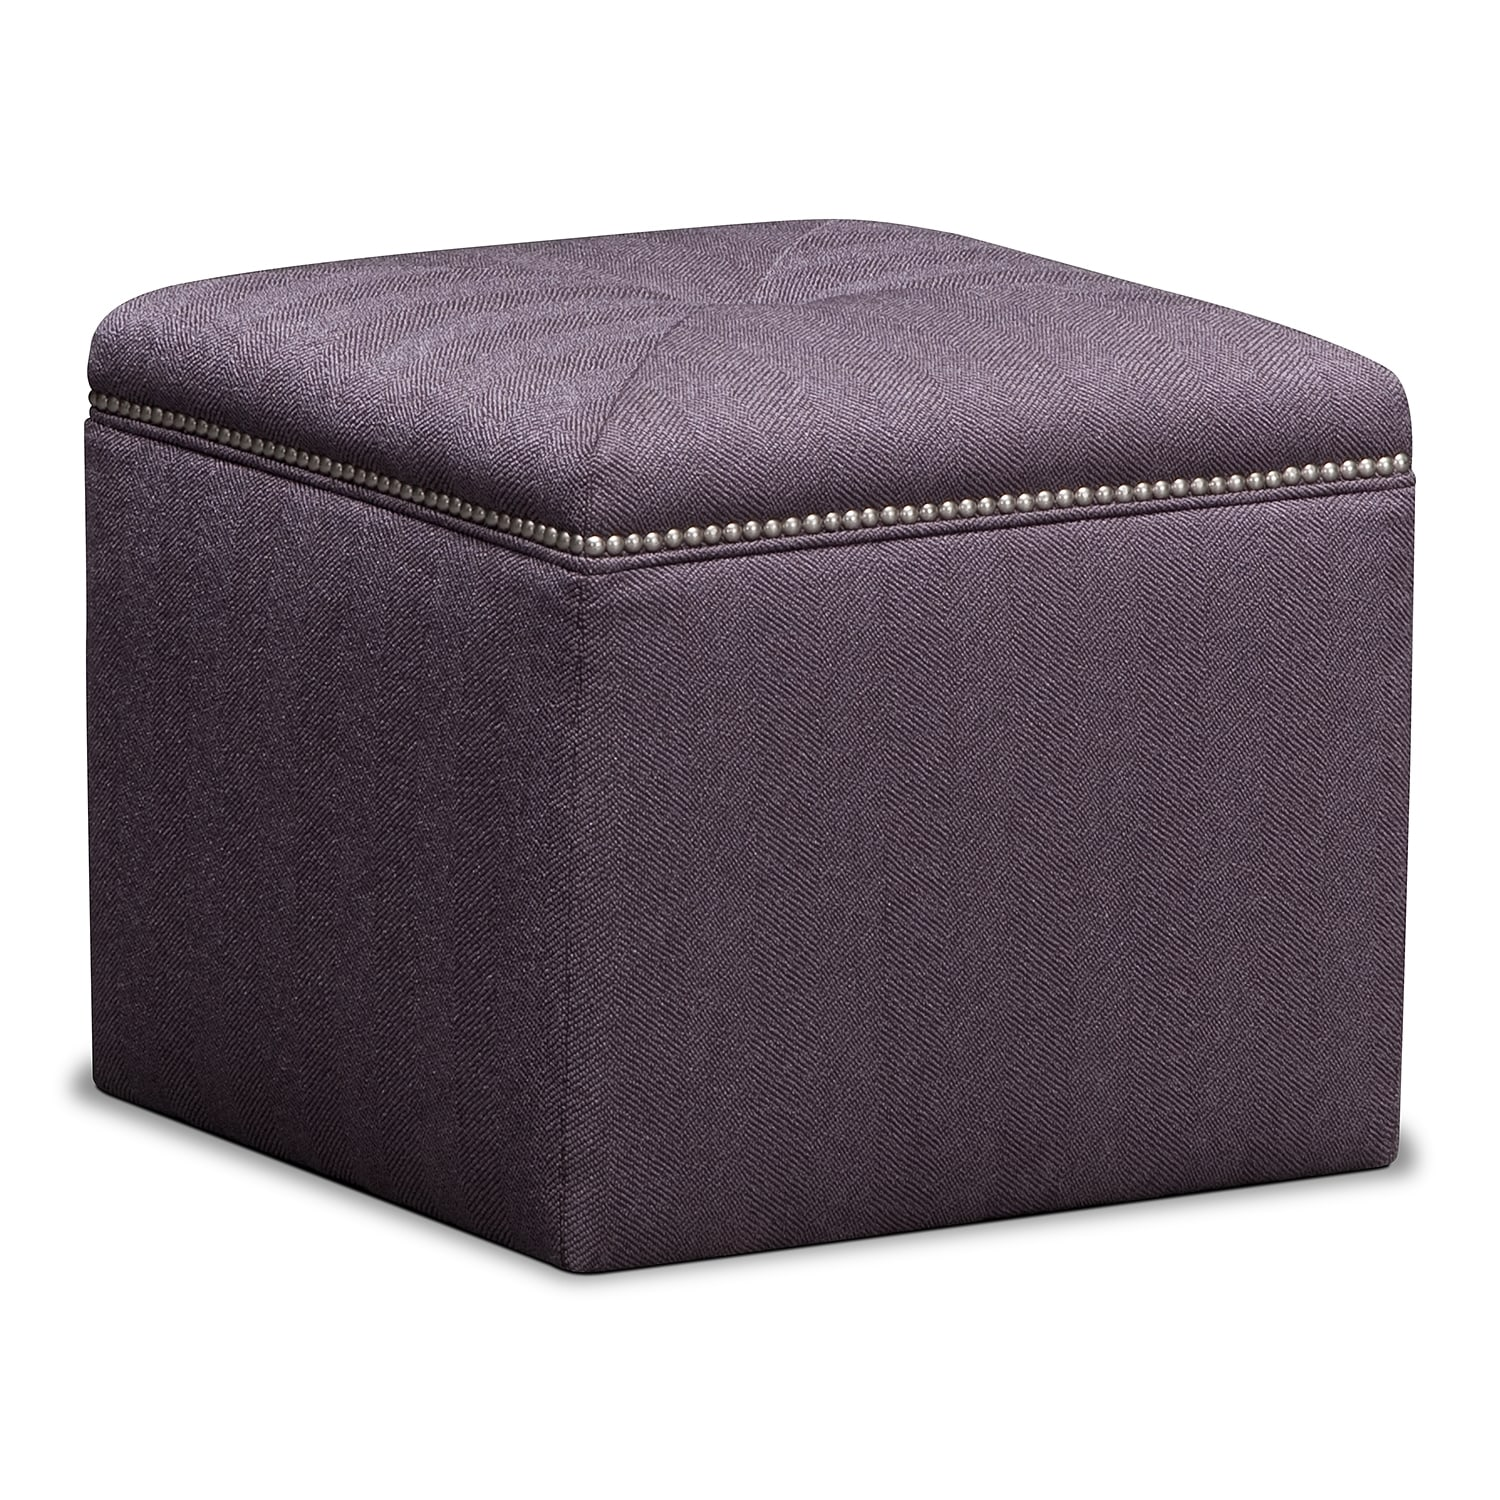 Living Room Furniture - Ritz Cube Ottoman - Lavender